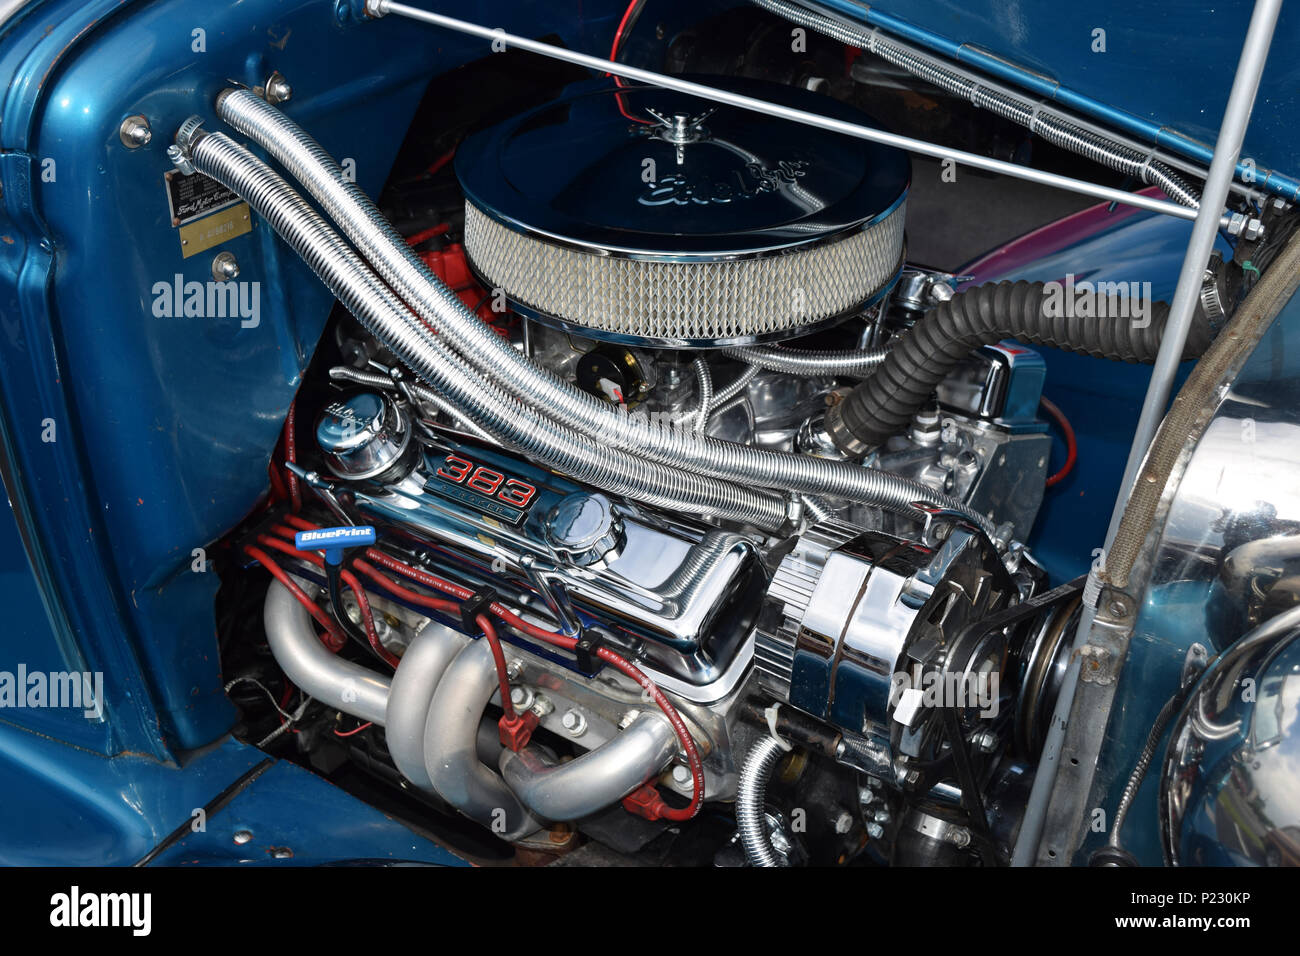 Stroker Stock Photos Images Alamy Engine Diagram 3 1 A 383 Chevrolet Hot Rod Image